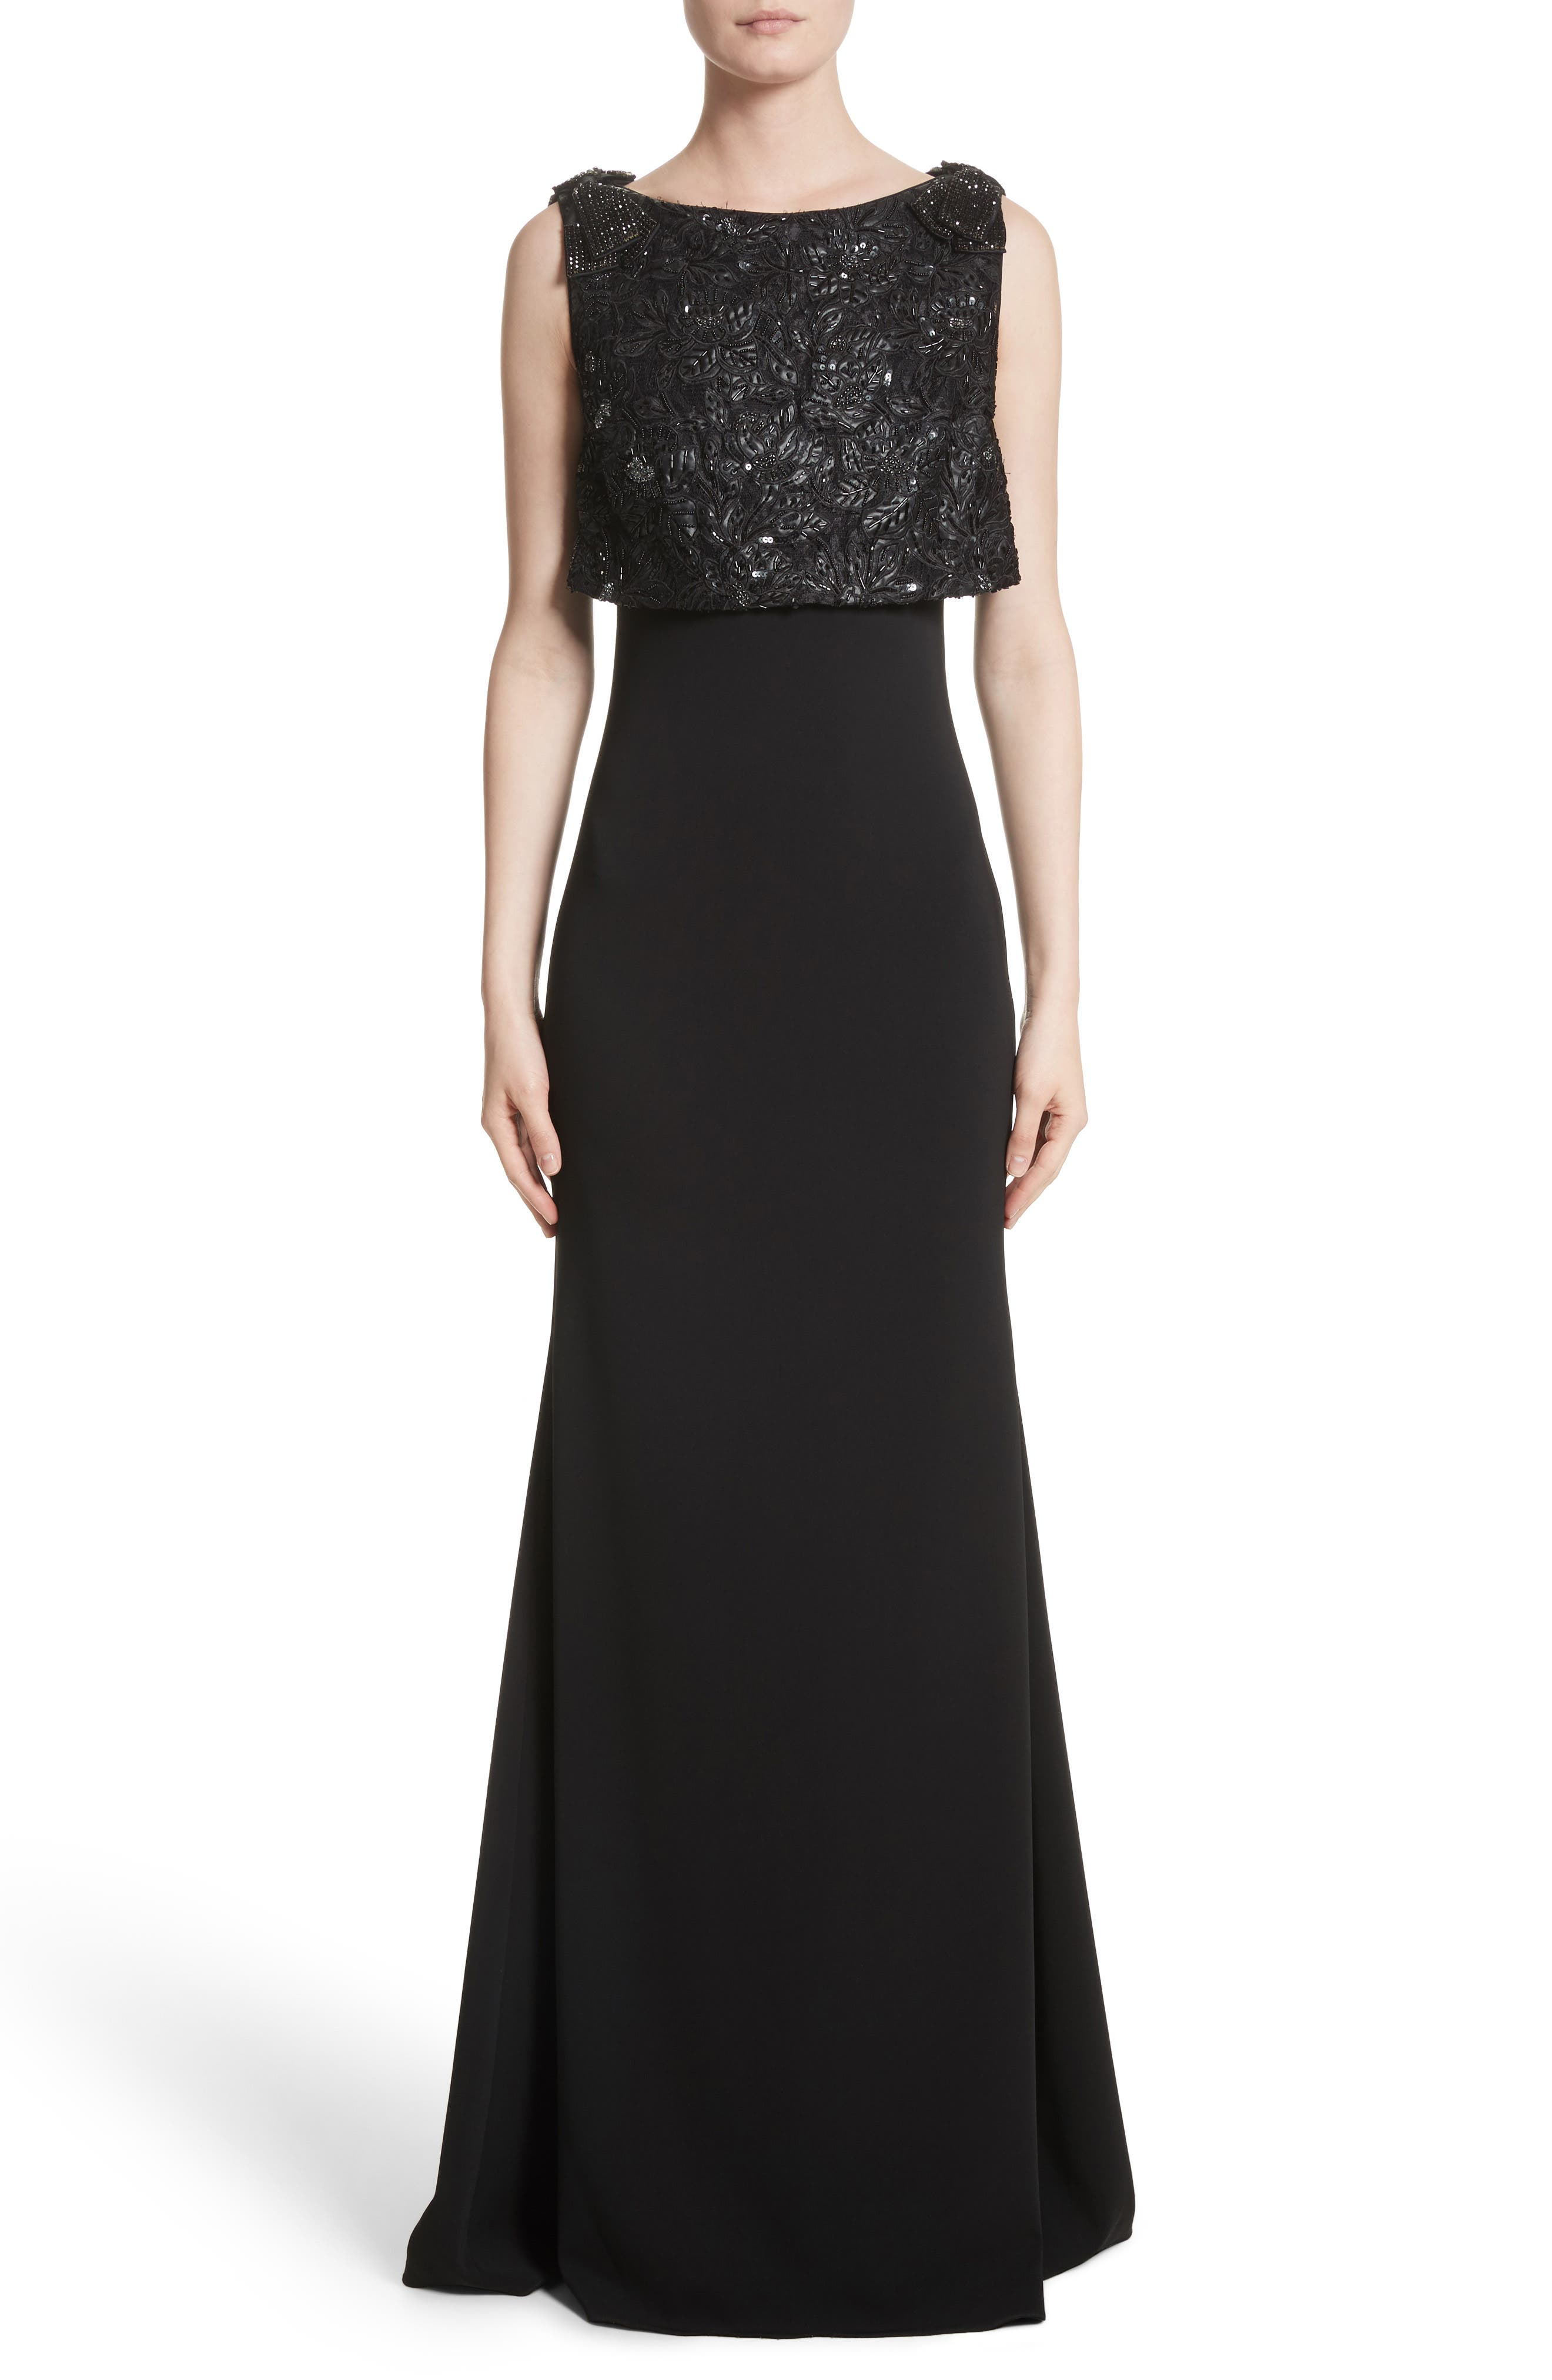 Badgley Mischka Couture Embellished Popover Gown,                         Main,                         color, 001